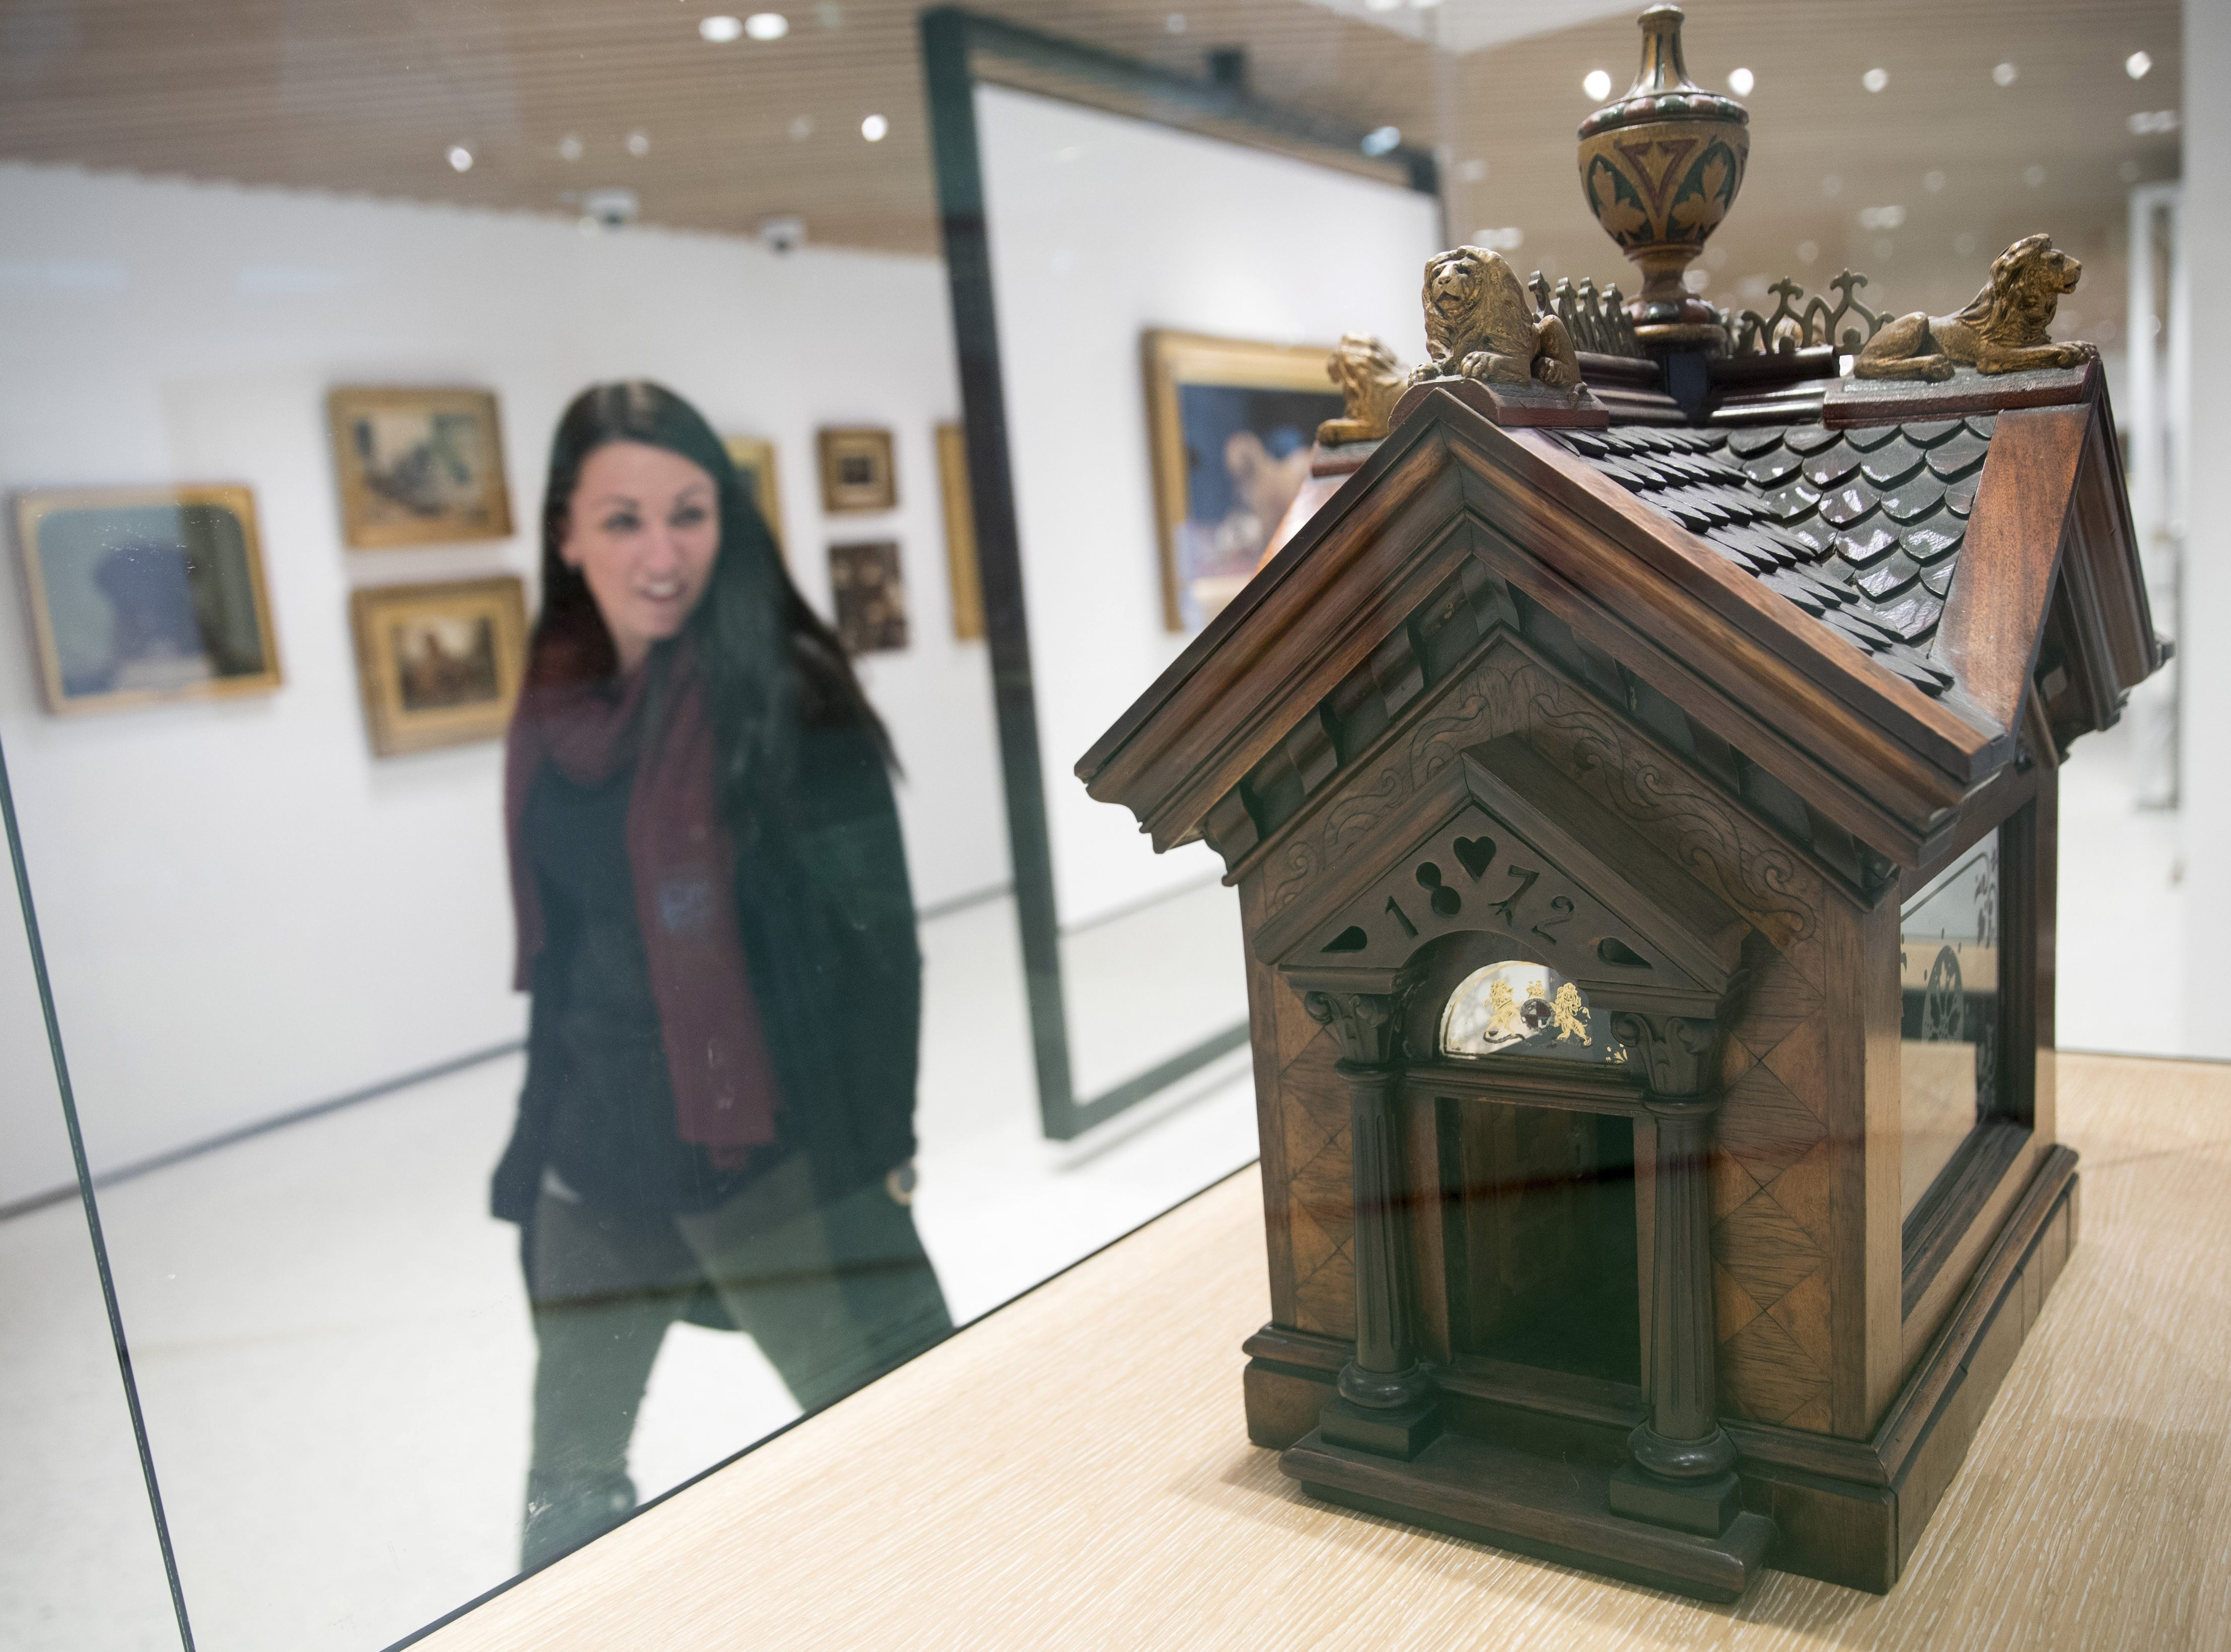 A British Edwardian-style Dog House for a Chihuahua is on display at the American Kennel Club Museum of the Dog in New York.  AP This Wednesday, Jan. 9, 2019, photo shows a British Edwardian-style Dog House for a Chihuahua on display at the American Kennel Club Museum of the Dog in New York. The museum opens Feb. 8.  (AP Photo/Mary Altaffer)